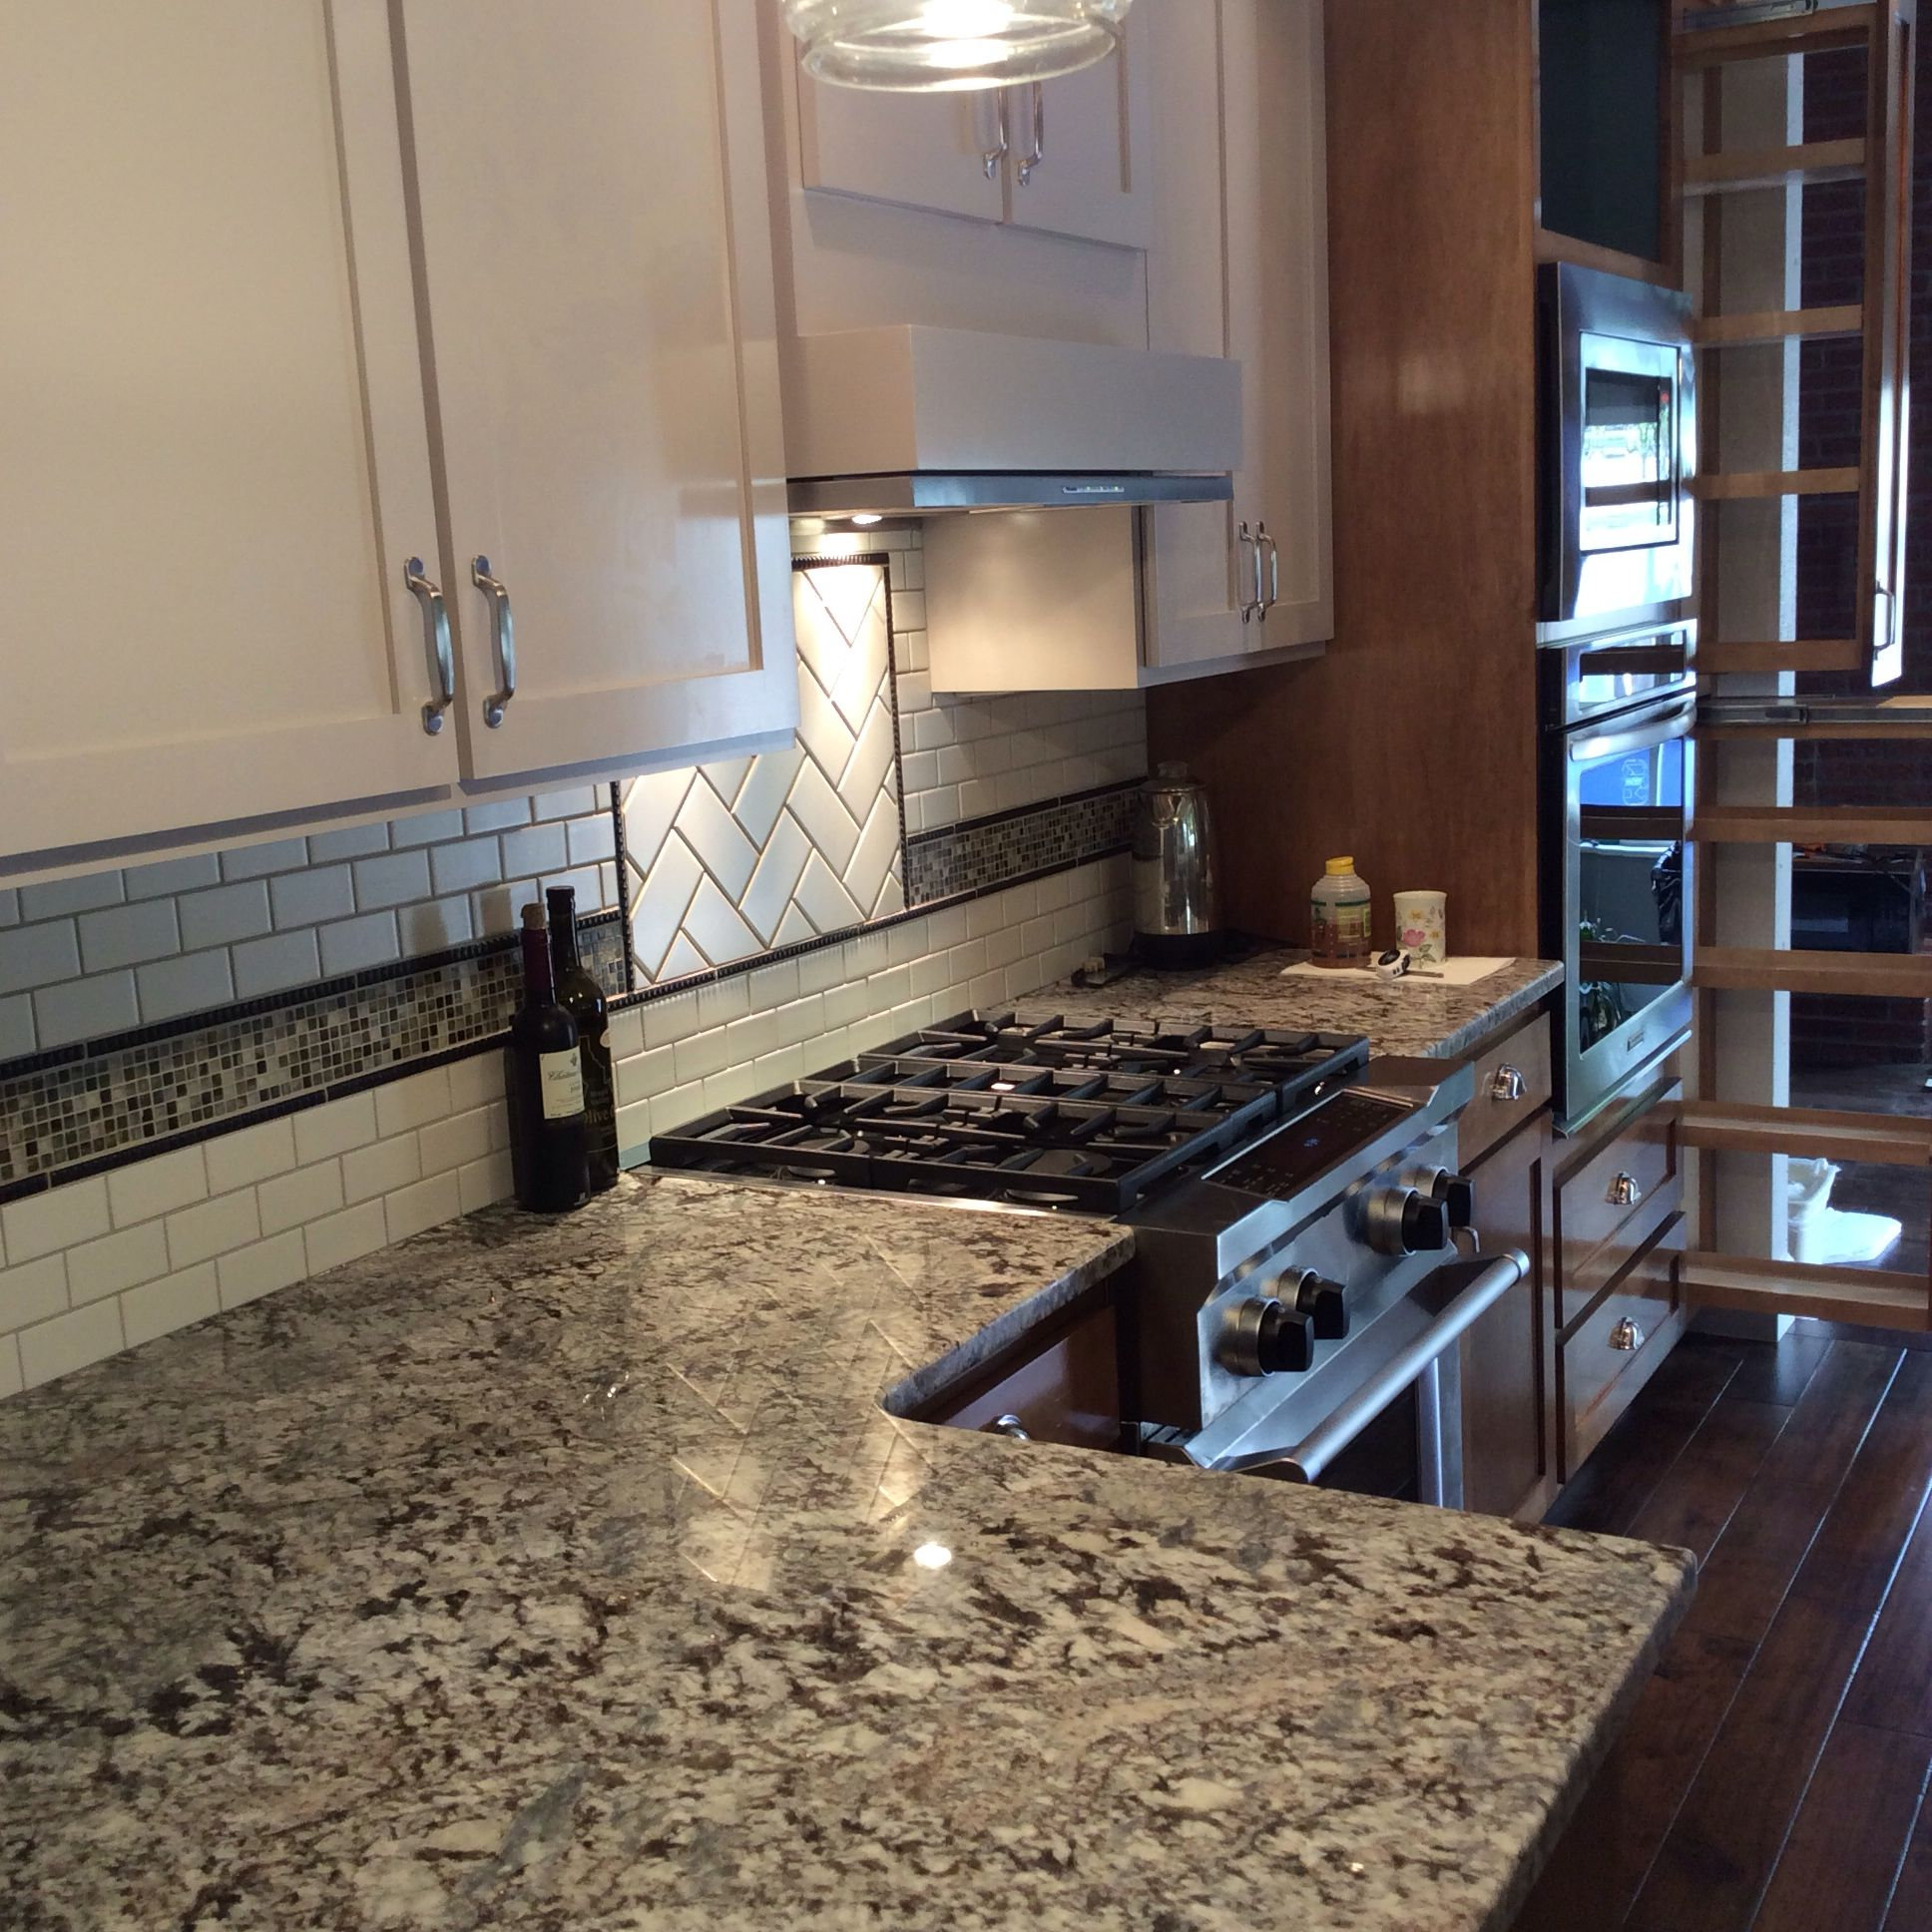 Granite Kitchen Countertops With Backsplash: Custom Kitchen With Lennon Granite Countertops, Subway